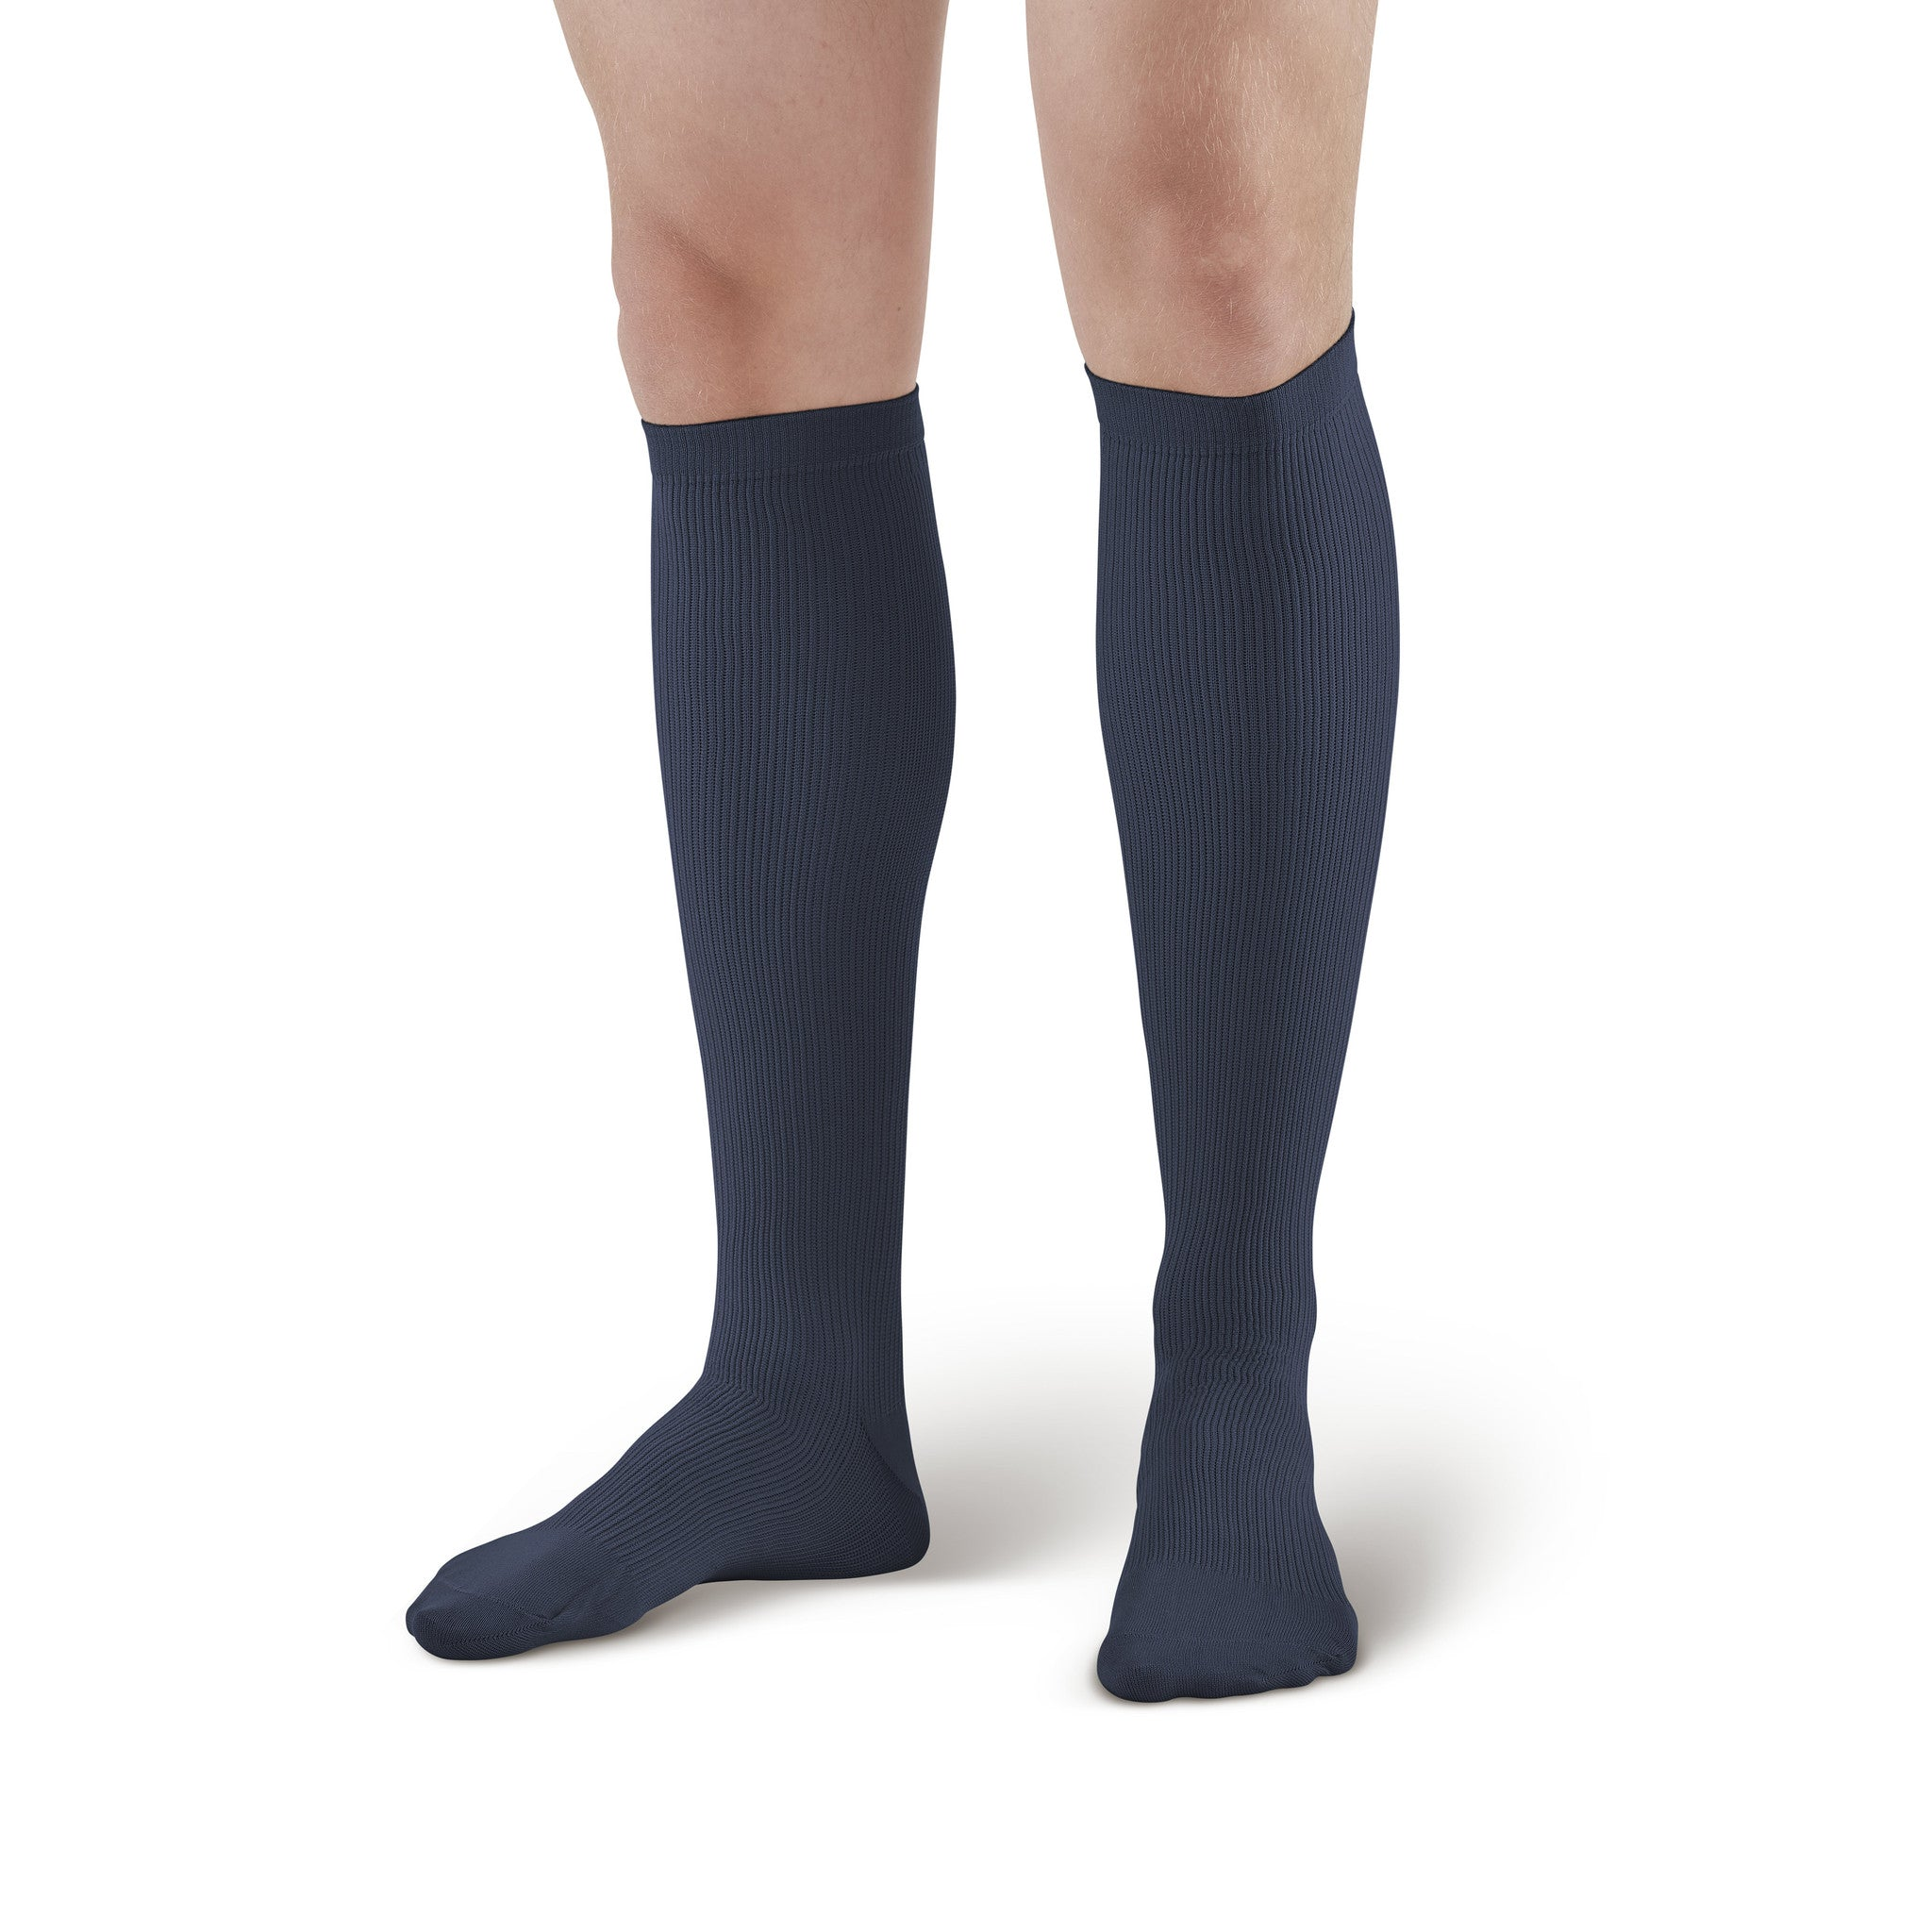 be4140f5f ... AW Style 100 Men s Knee High Dress Socks - 20-30 mmHg Navy ...